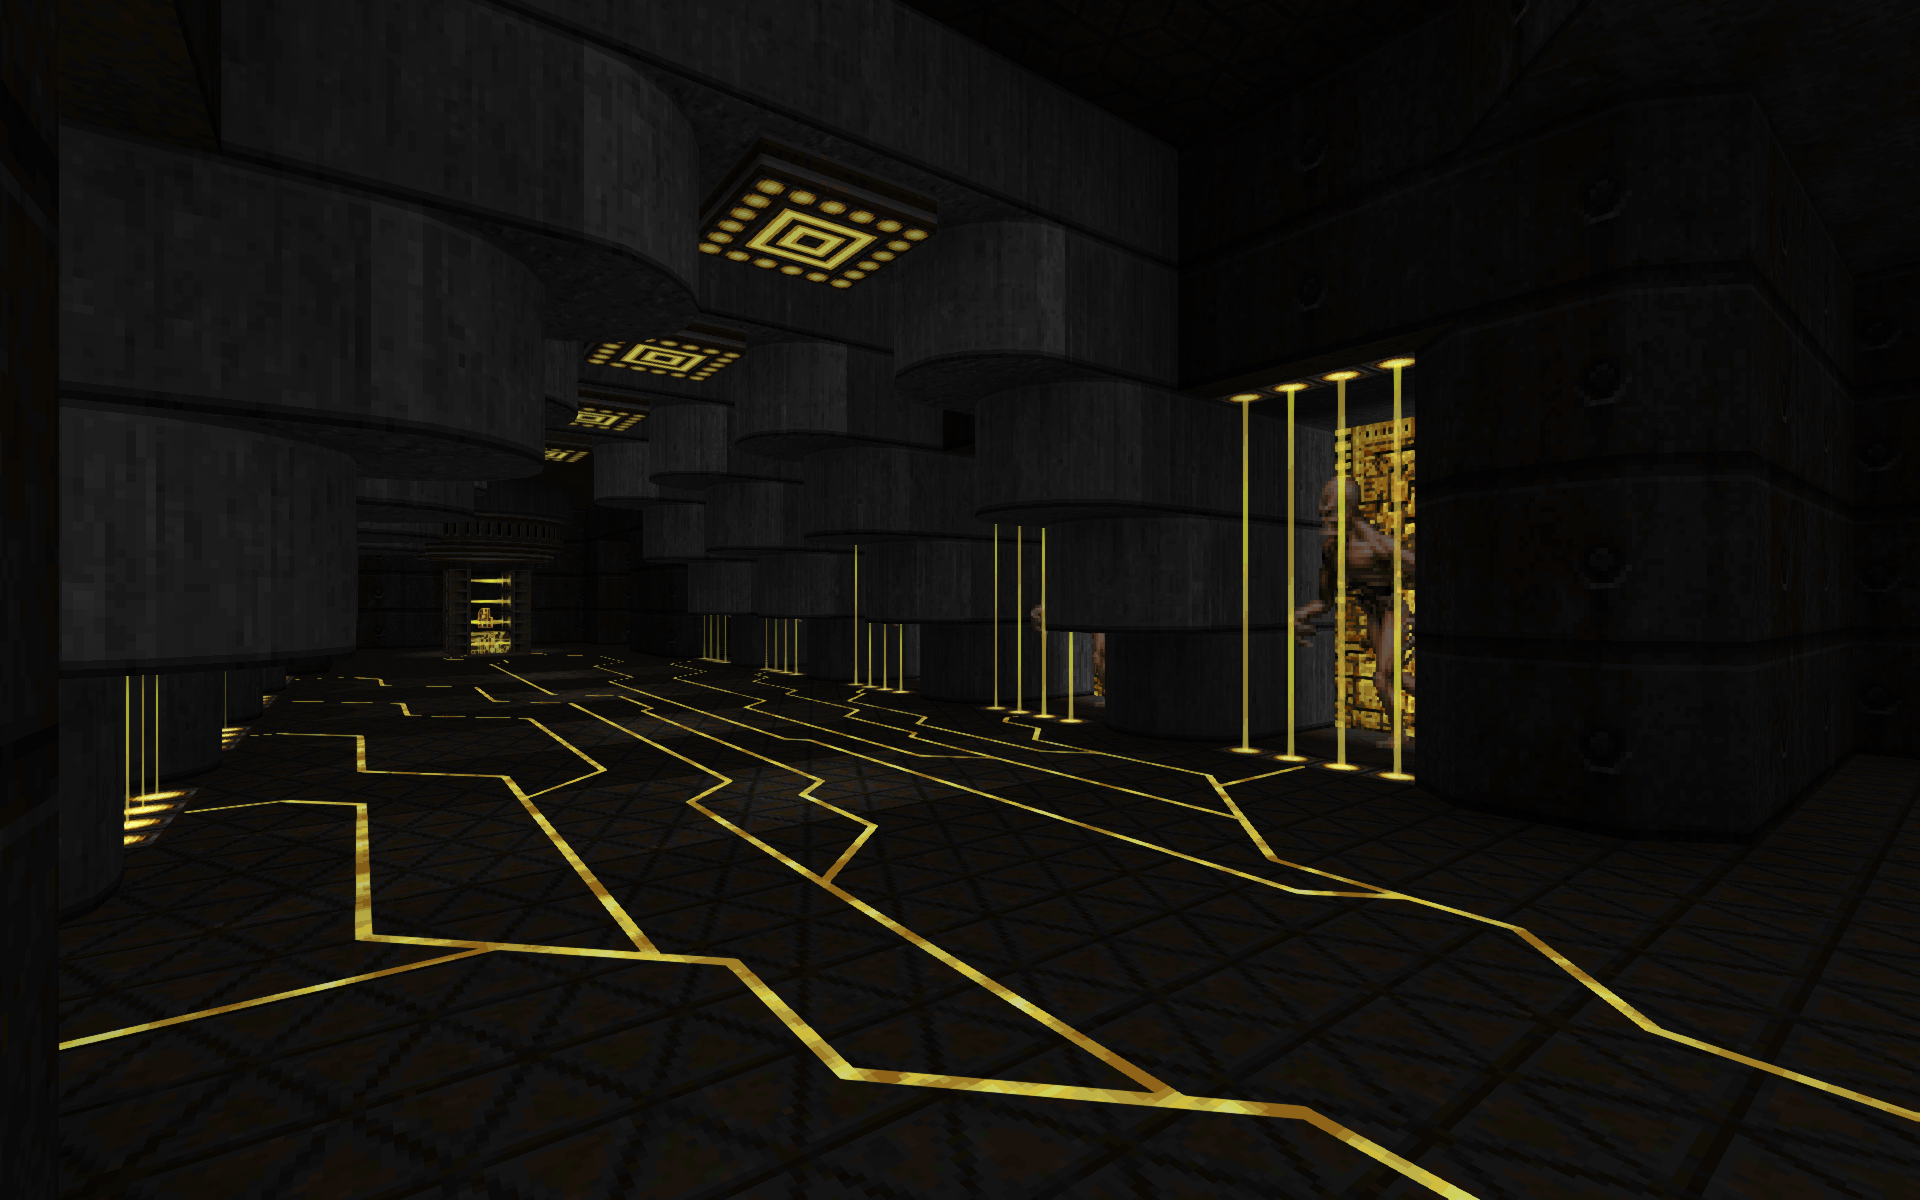 ukiro's Doom works – Levels, textures, and opinions for the world's